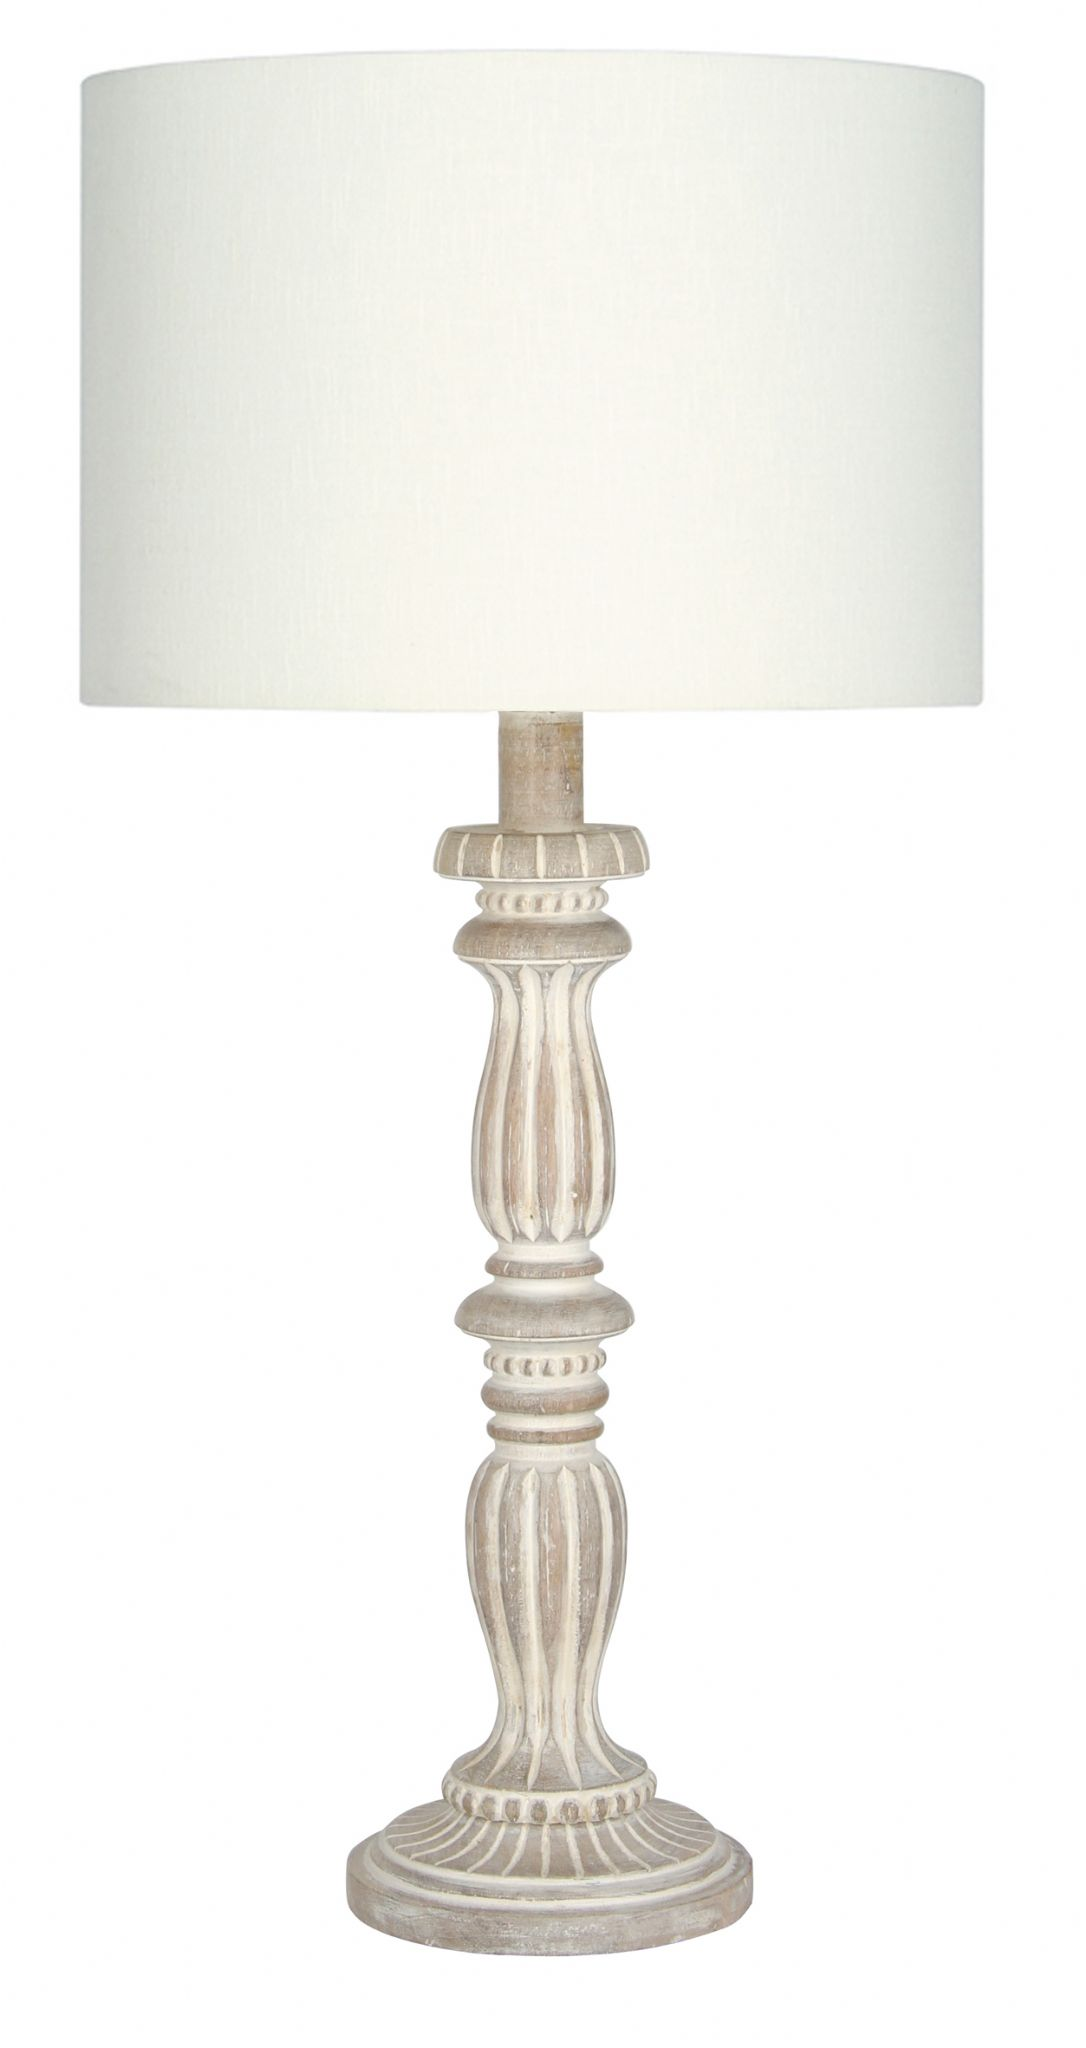 Antique cream wash wood table lamp base aloadofball Choice Image